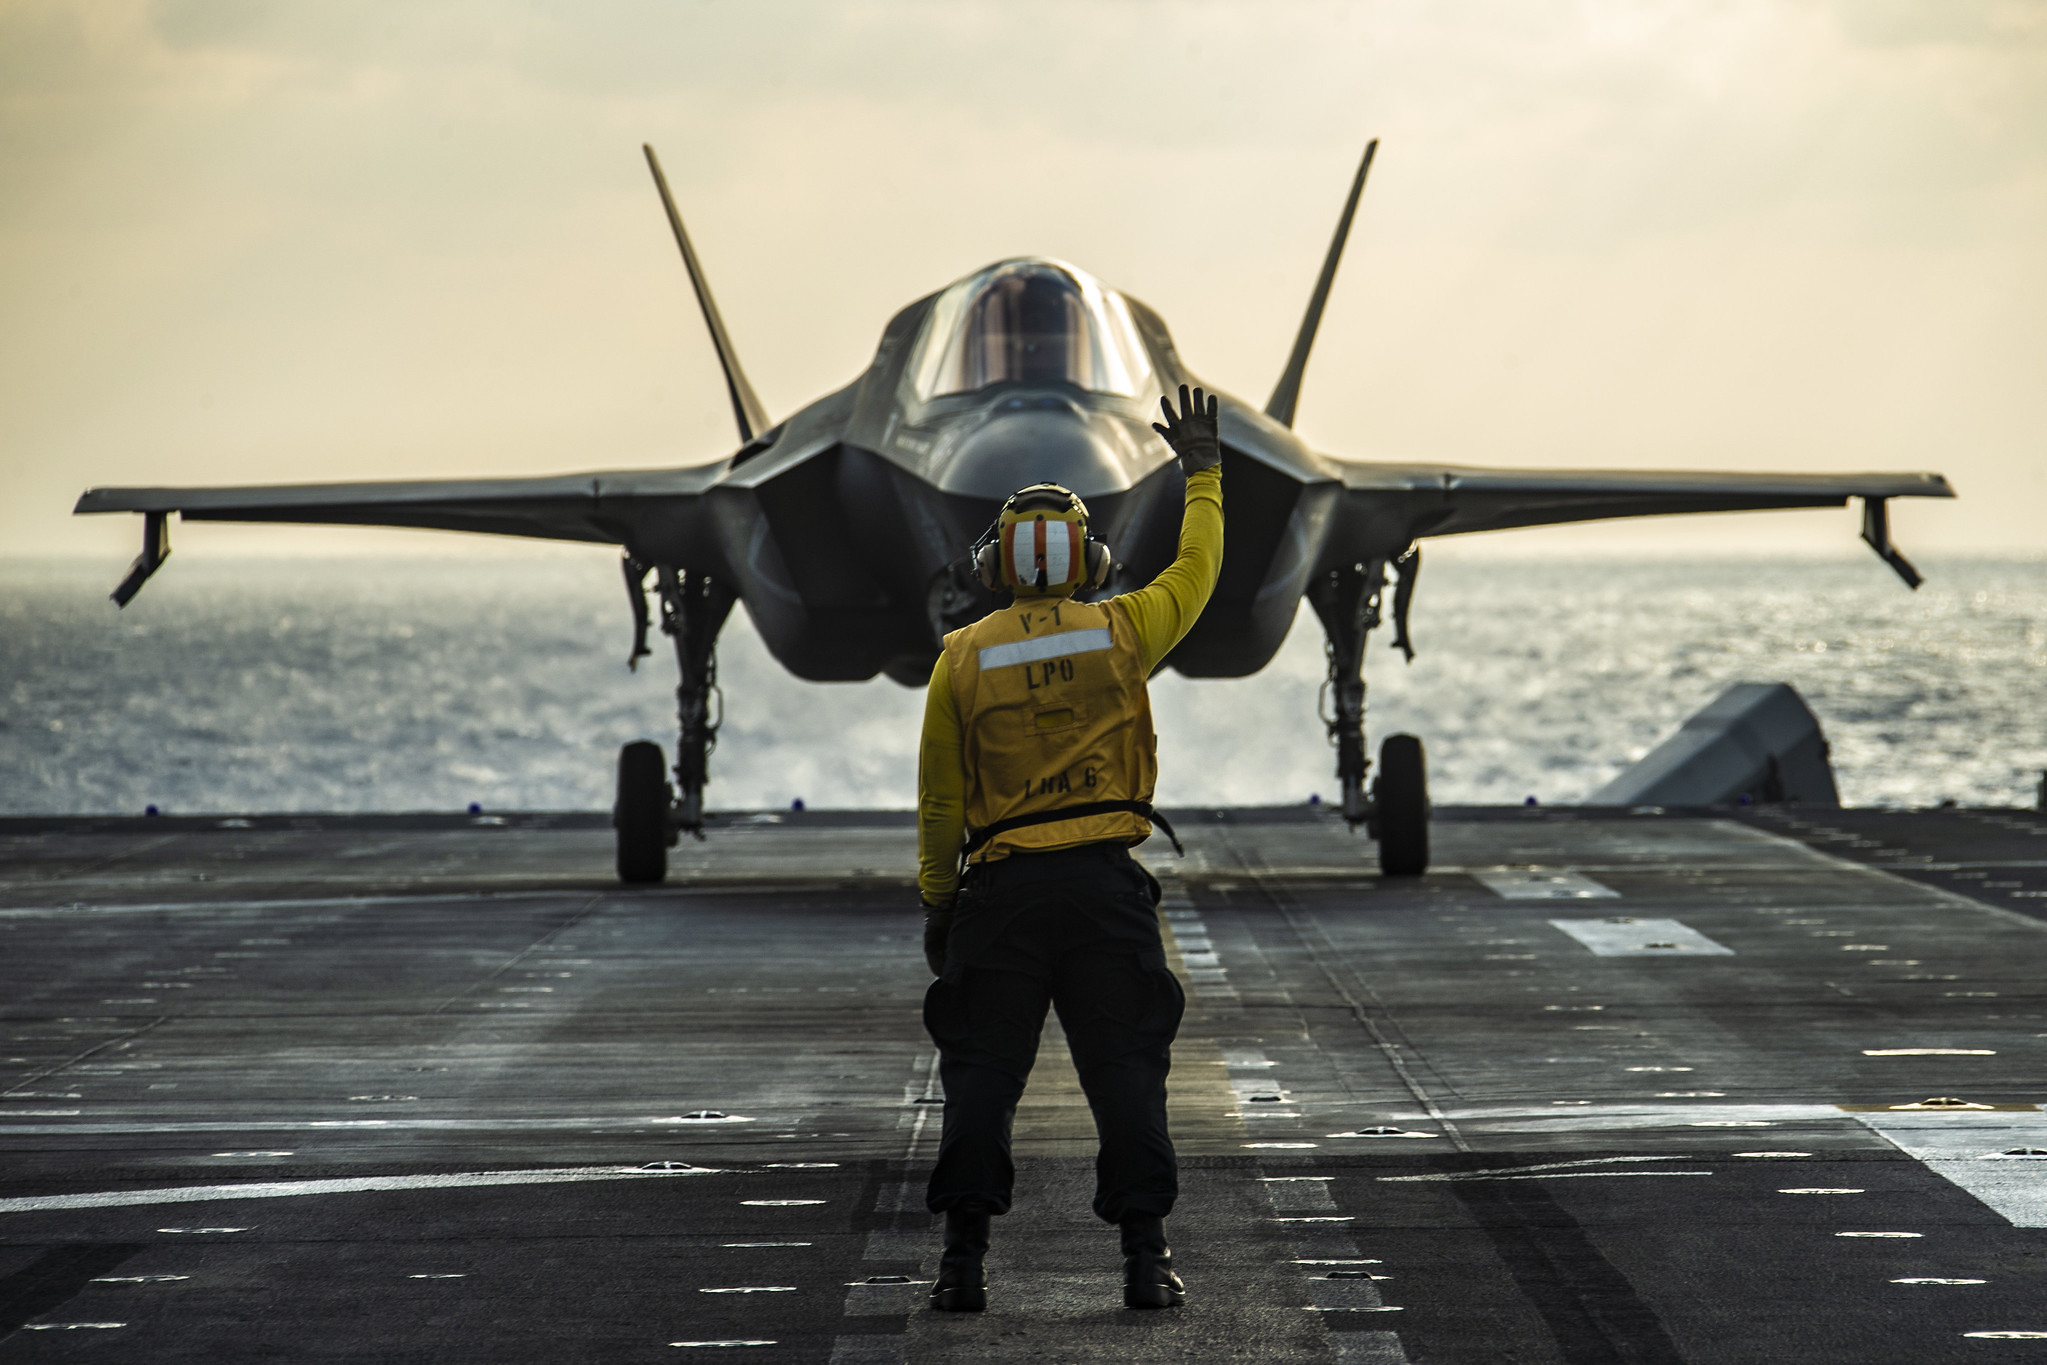 An F-35B Lightning II fighter aircraft prepares to take off from the flight deck of amphibious assault ship USS America (LHA 6) on March 25, 2020, prior to a strike exercise of an inflatable maritime target in the Philippine Sea. (Lance Cpl. Joshua Brittenham/Marine Corps